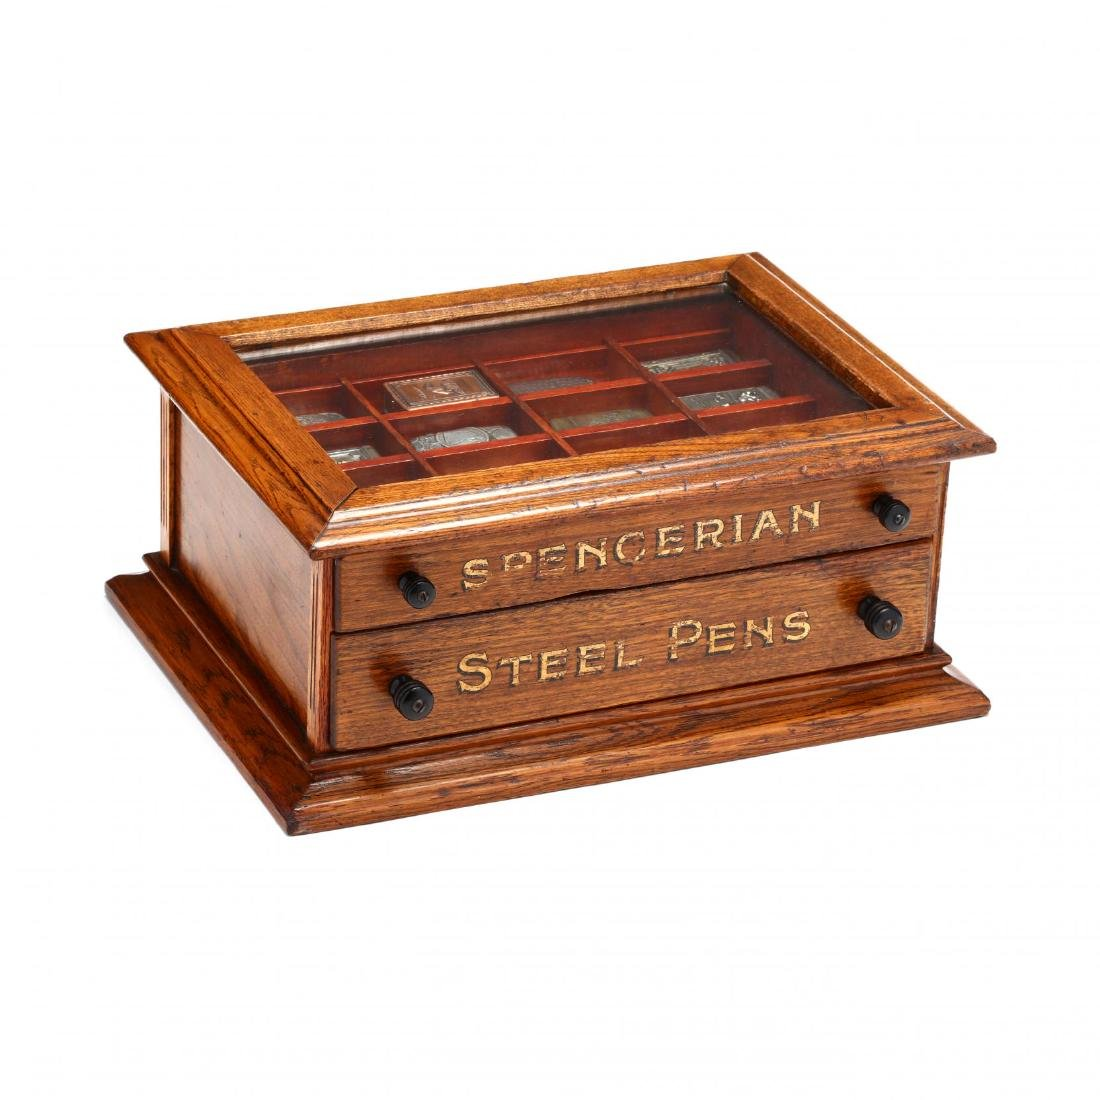 Match Safe Collection in a Spencerian Pen Display Case